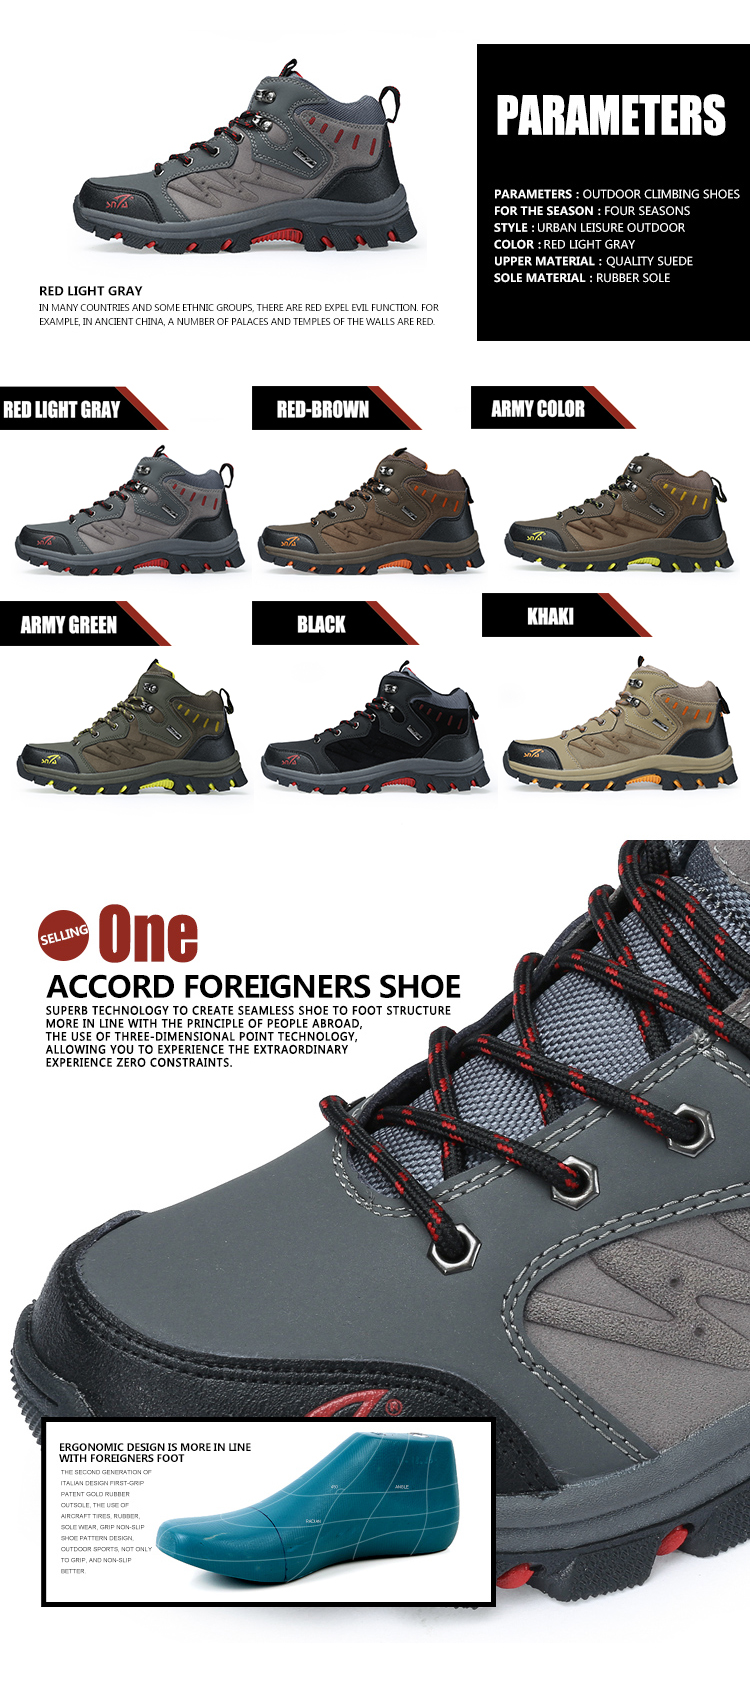 Buy Collection Safety Shoes Kickers Koleksi Sepatu Pria Fashion Outdoor Snta 432 Deals For Only Rp219000 Instead Of Rp285000